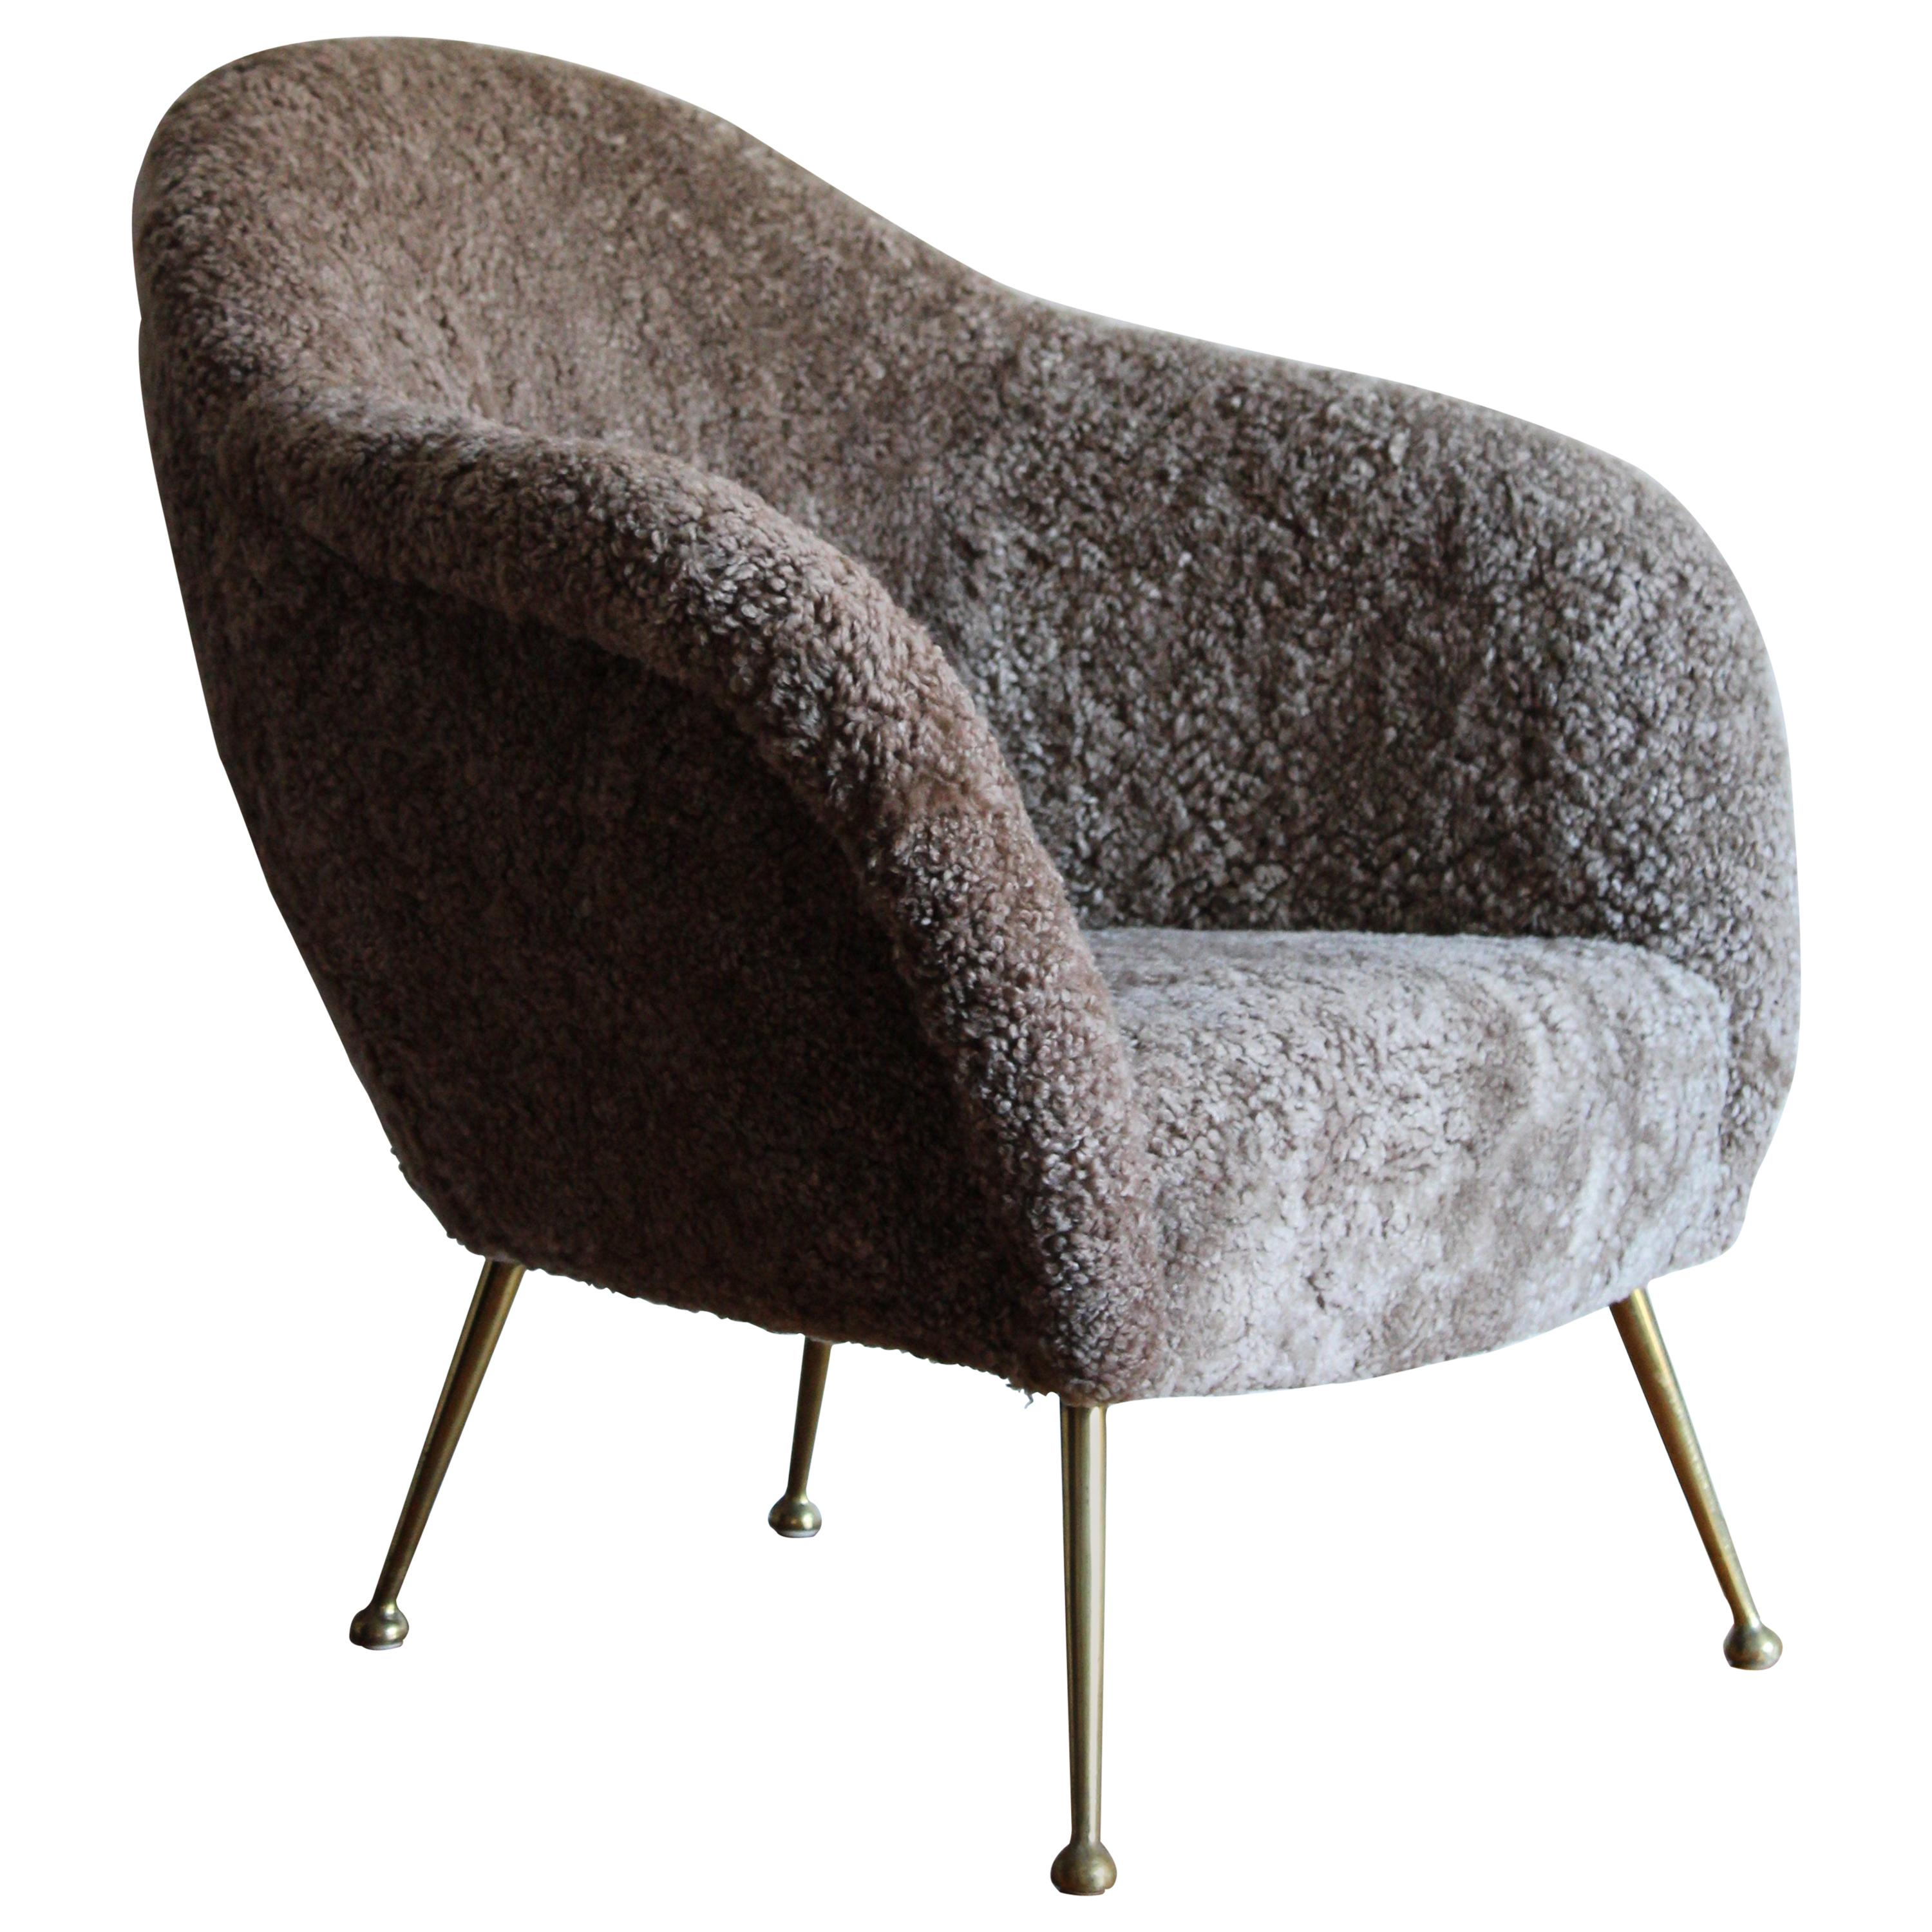 Italian Designer, Organic Lounge Chair, Sheepskin, Brass, Italy, 1950s